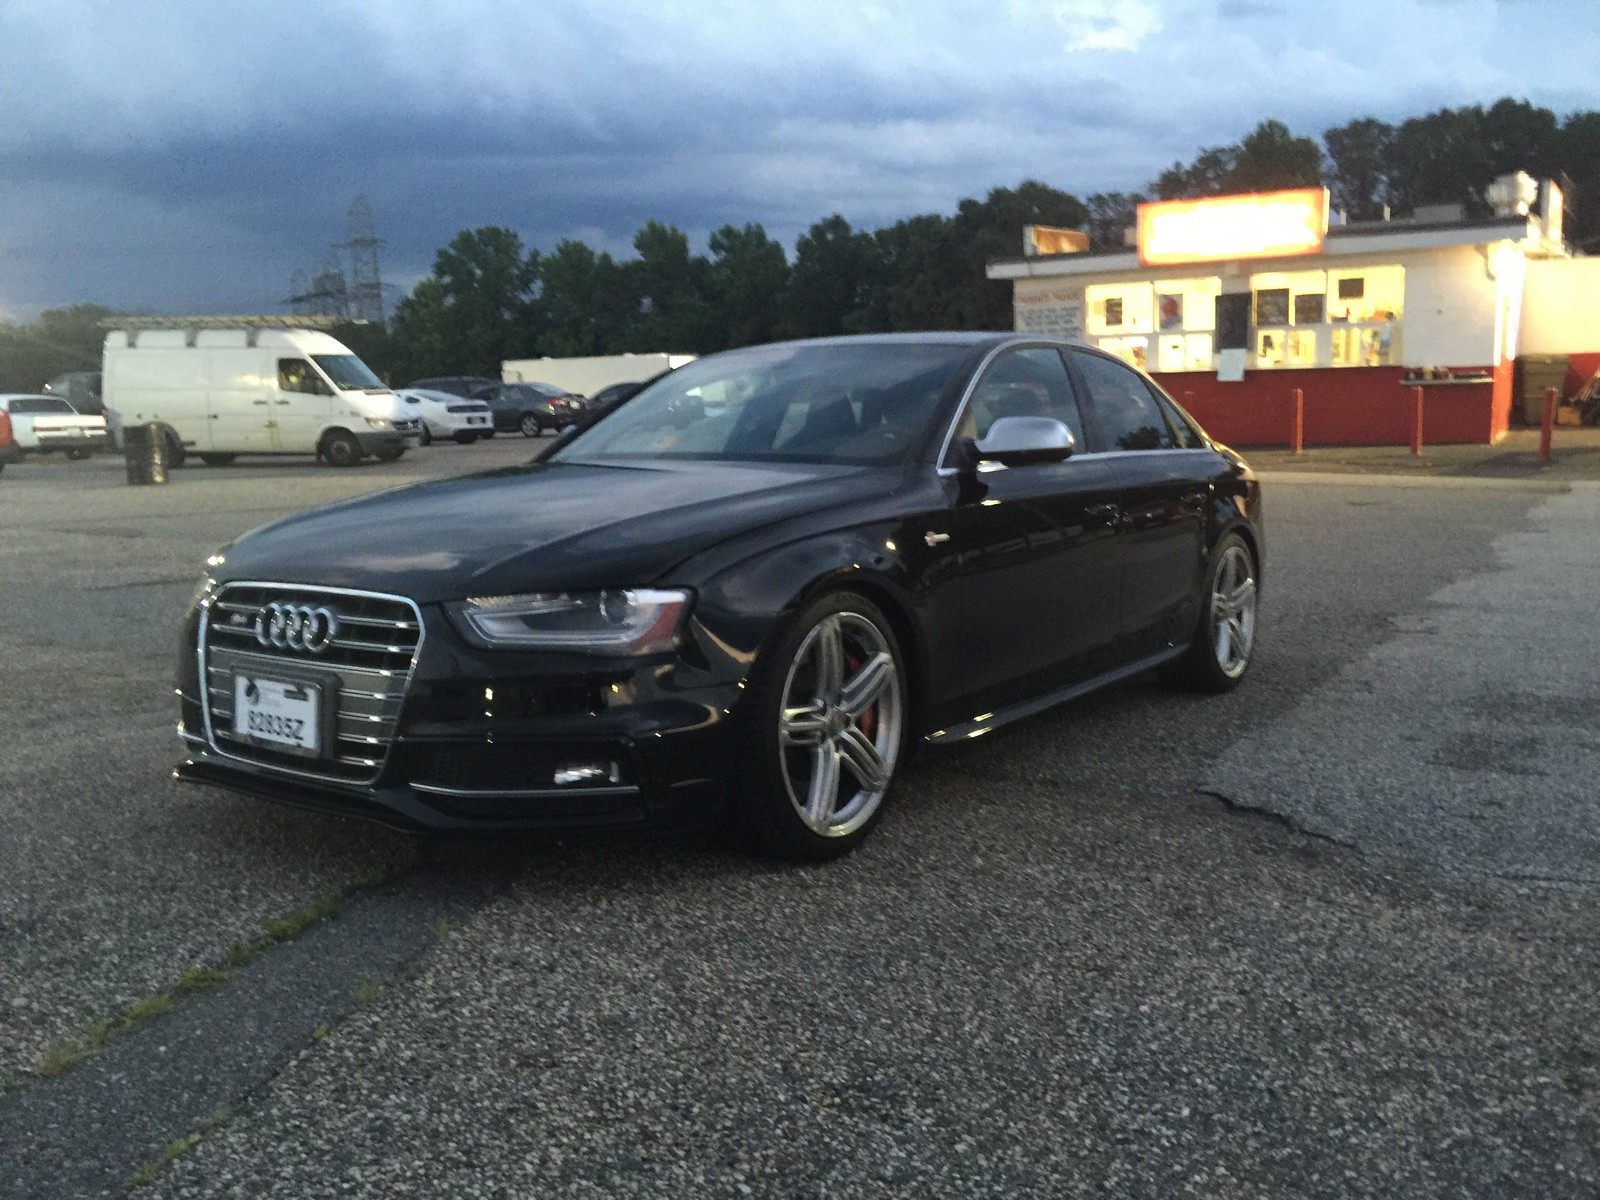 Audi S4 0 60 >> 2013 Audi S4 1/4 mile trap speeds 0-60 - DragTimes.com